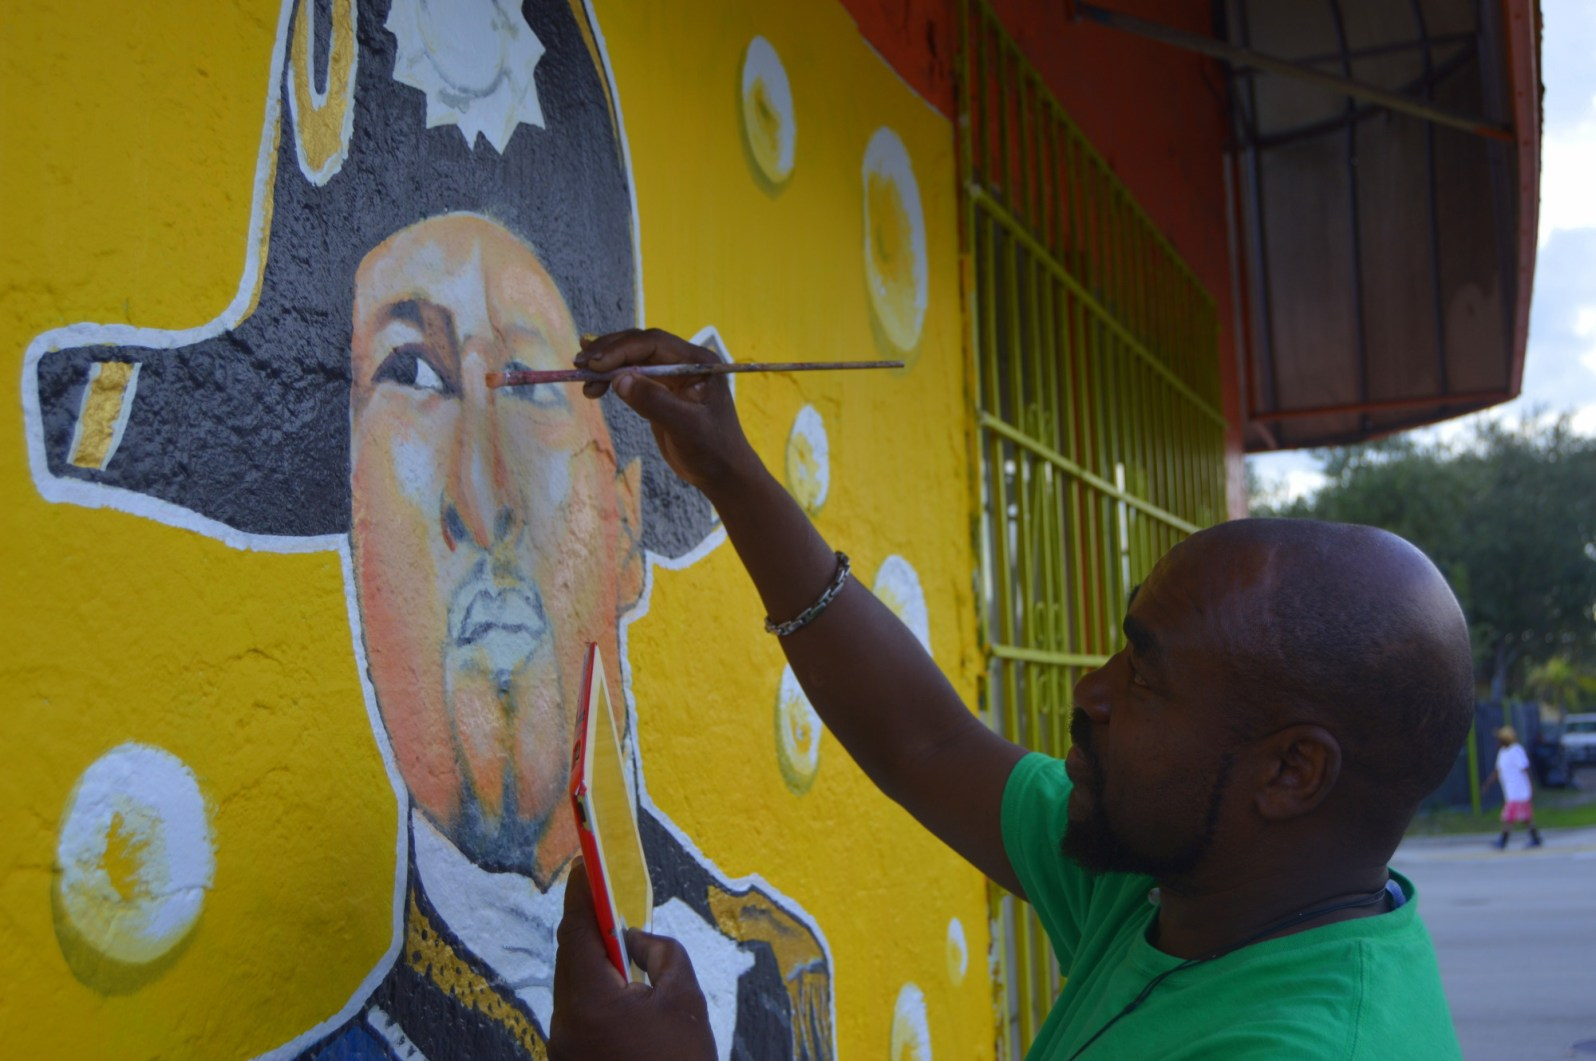 Little Haiti artist Serge Toussaint creating one of iconic murals. (Courtesy Alain Pierre-Louis)